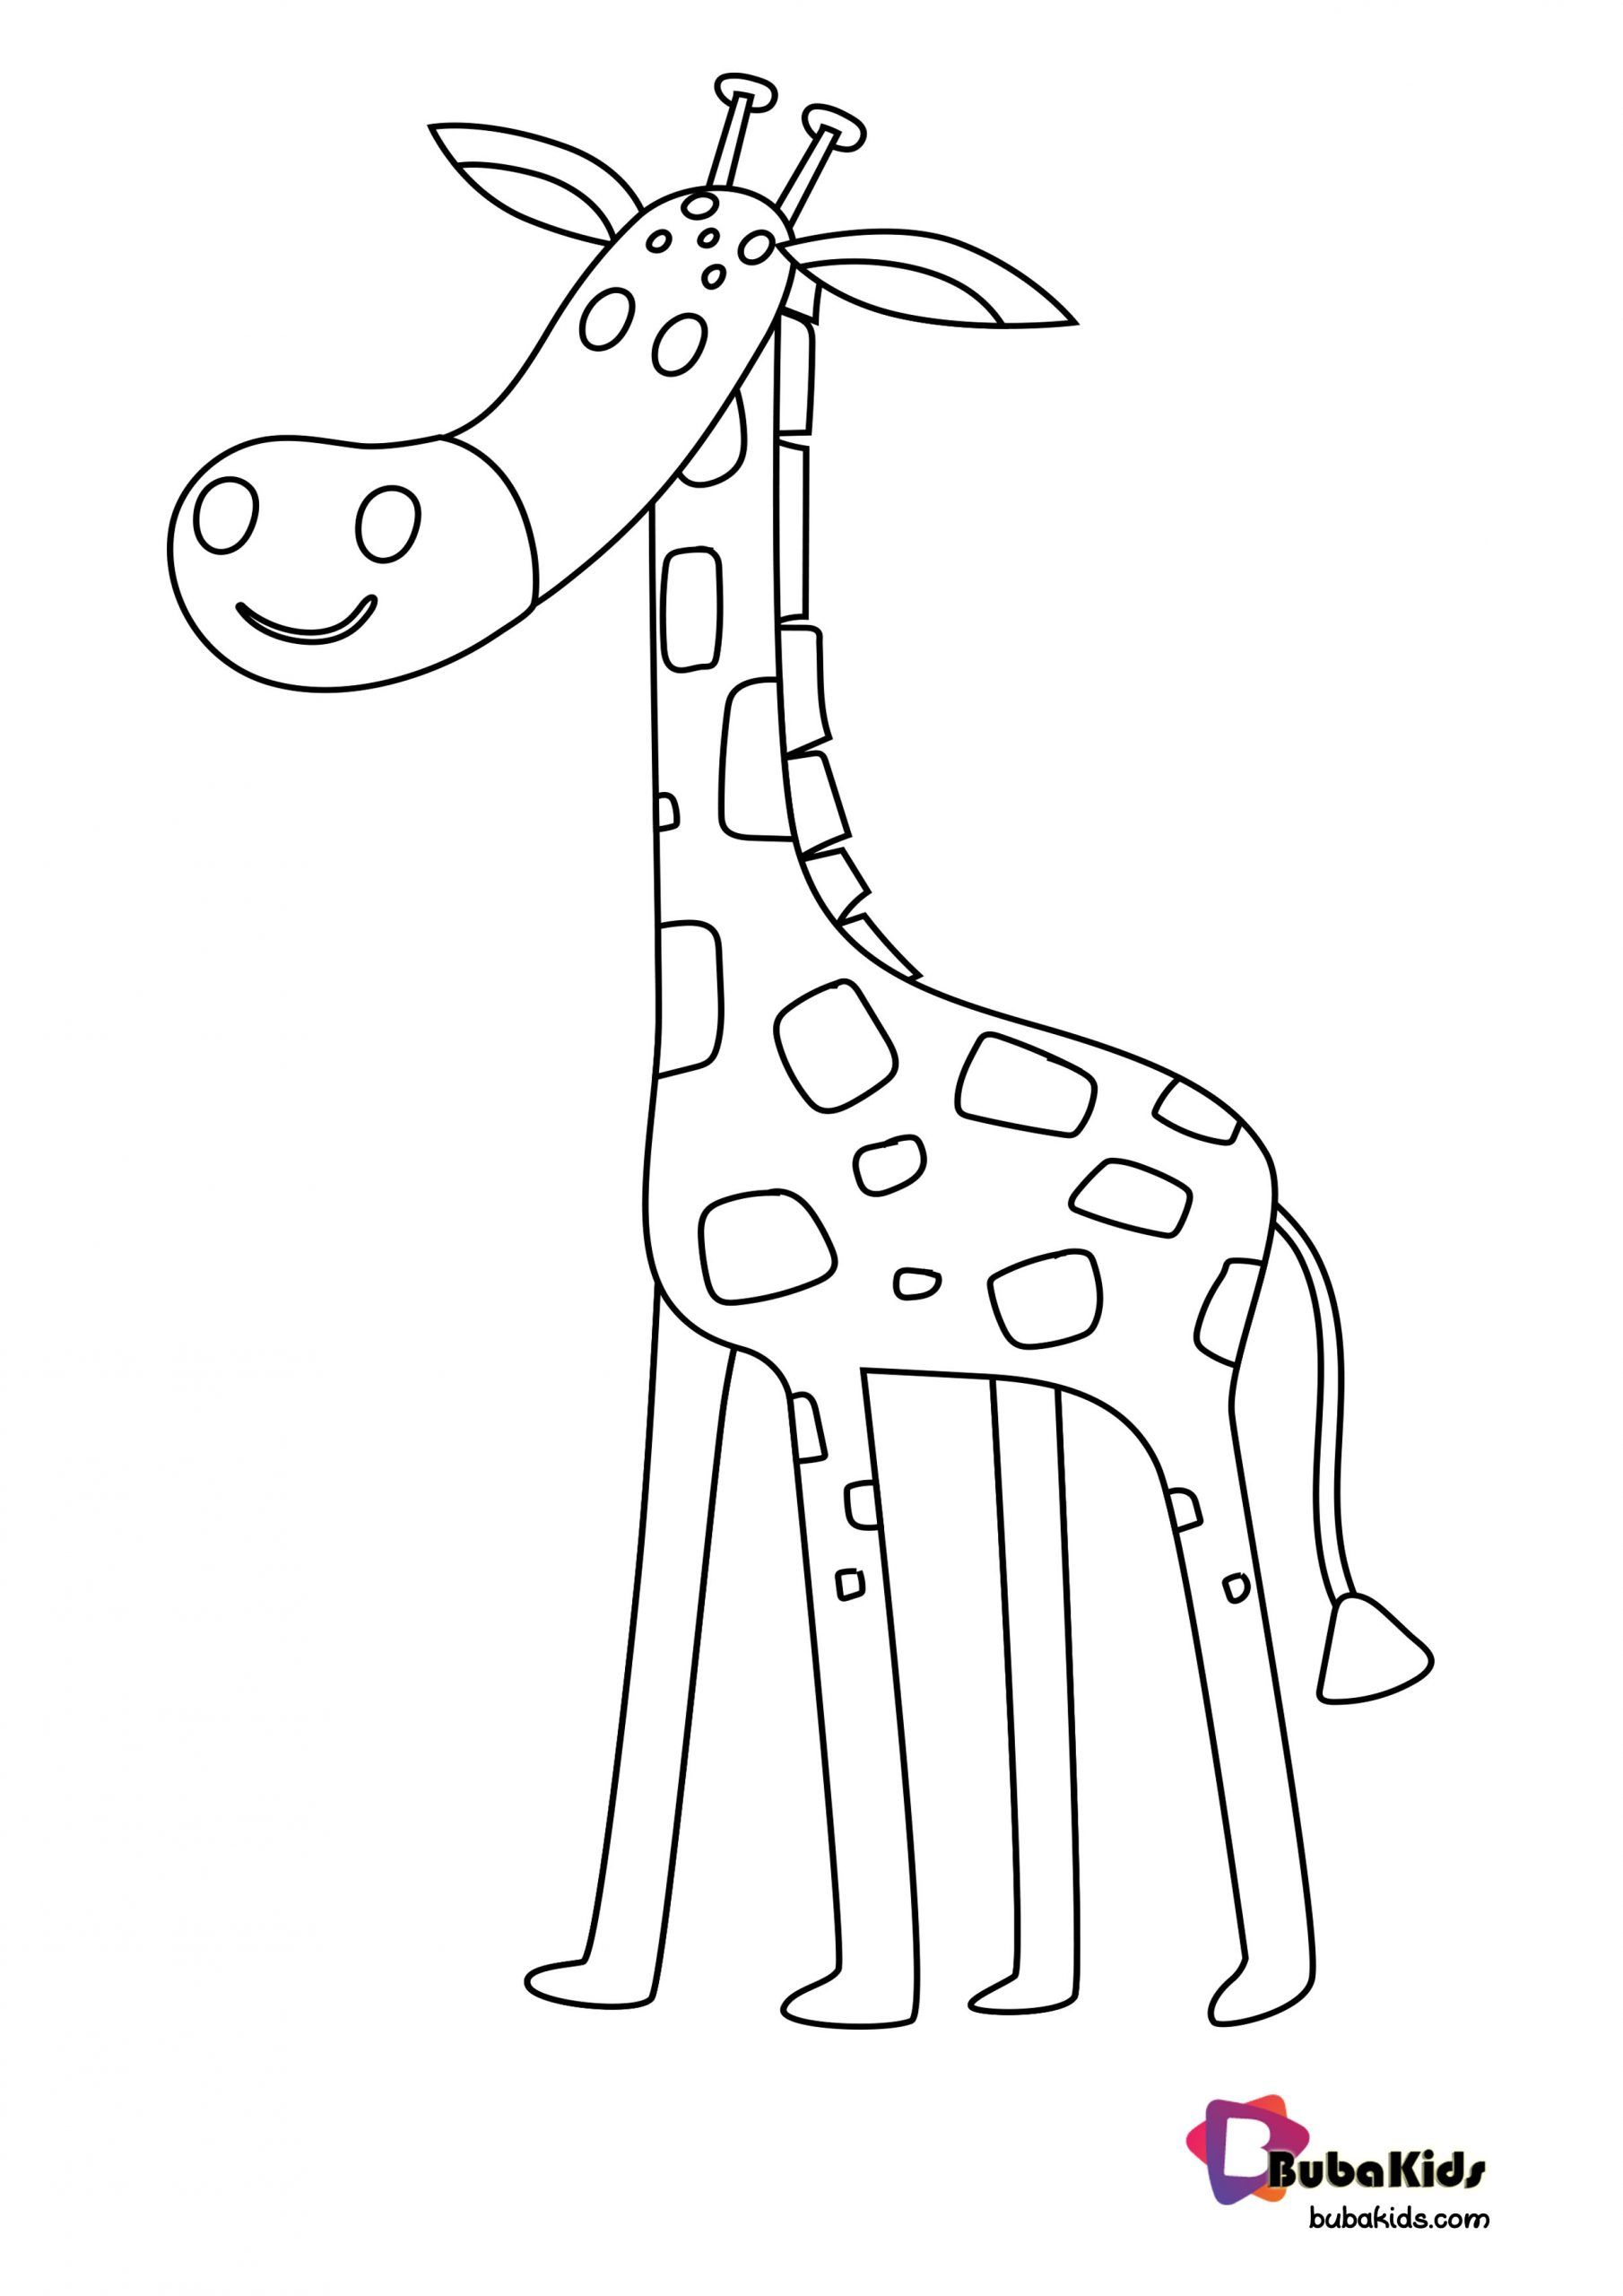 Cute Giraffe For Preschool Kids Coloring Page Collection Of Animal Coloring Pages For Teenage Printable T Kid Coloring Page Animal Coloring Pages Cute Giraffe